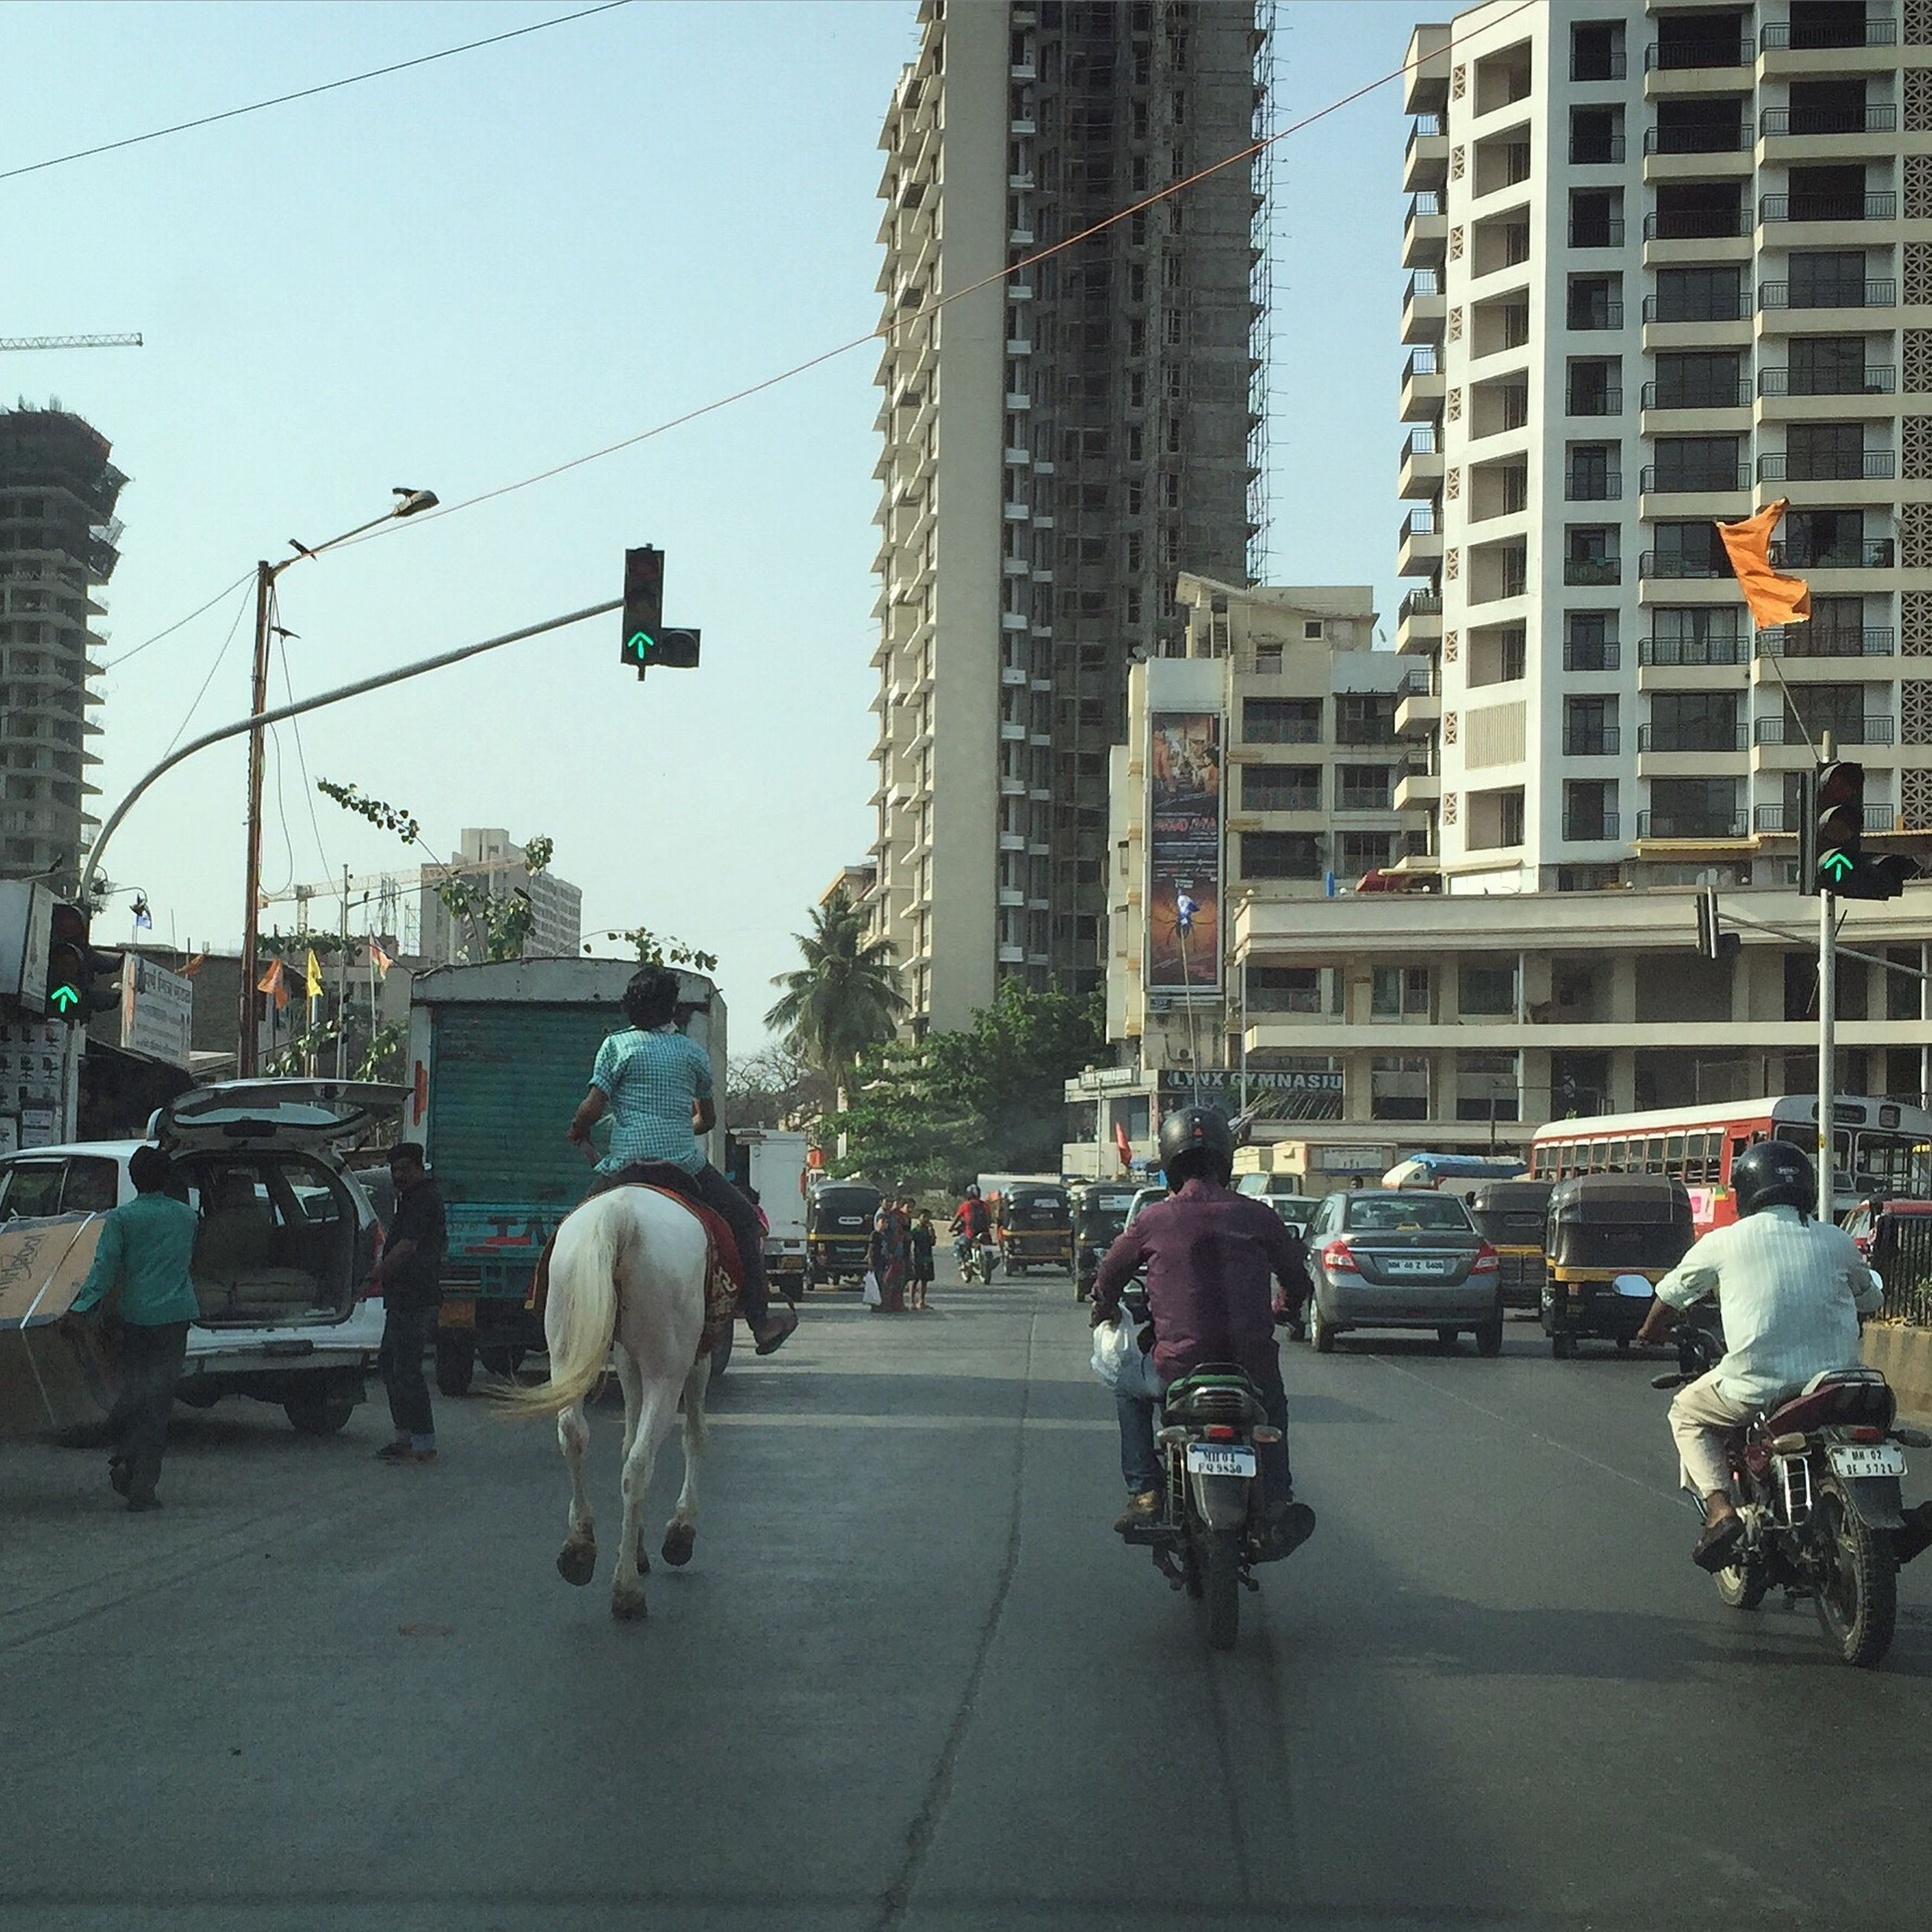 domestic animals, mammal, transportation, one animal, mode of transport, building exterior, city, real people, built structure, land vehicle, pets, sky, outdoors, architecture, day, one person, horse cart, men, people